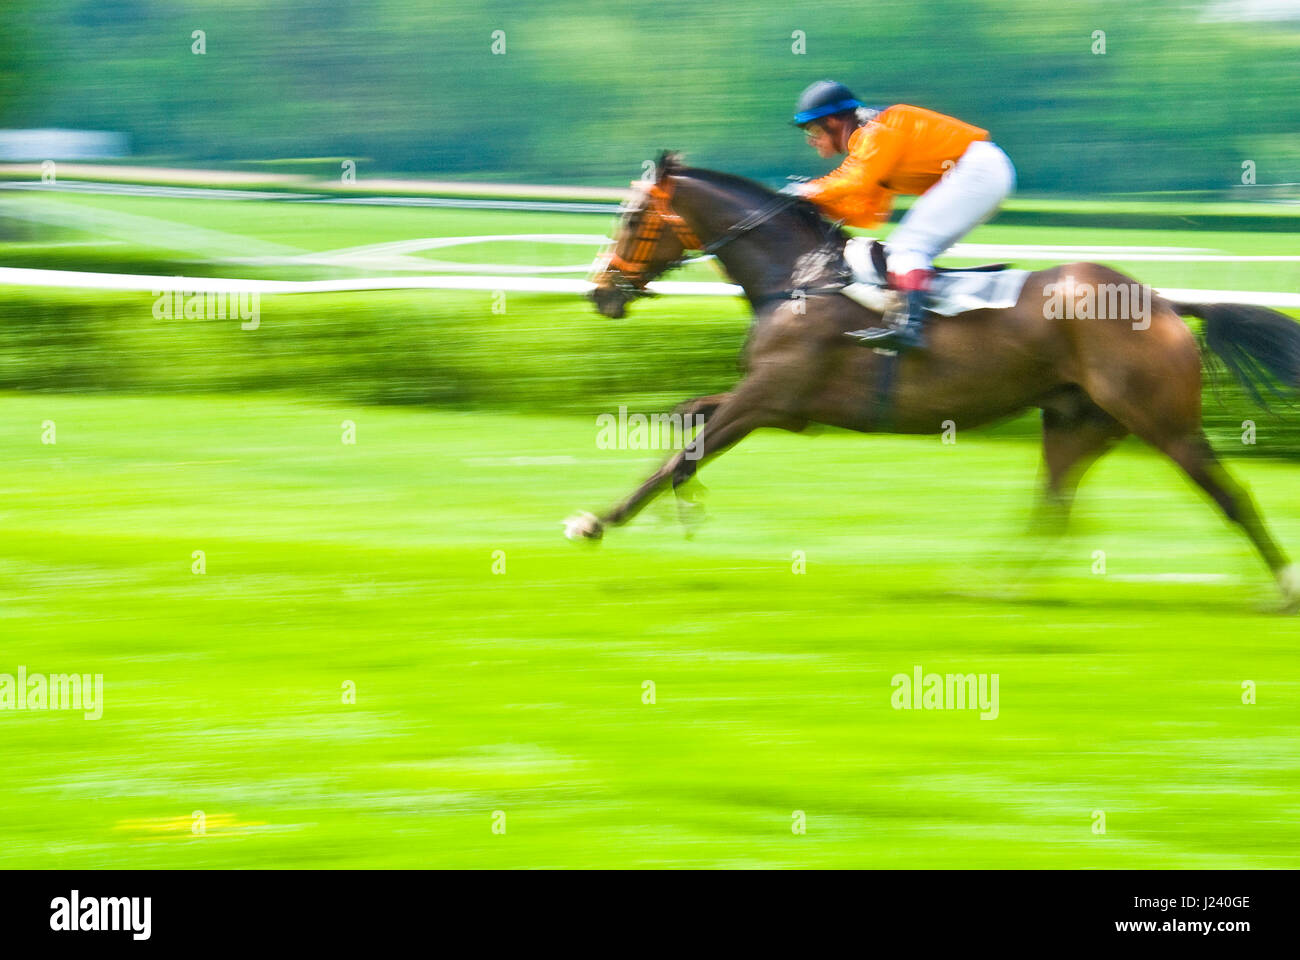 horse race finish with the winning horse and jockey - Stock Image